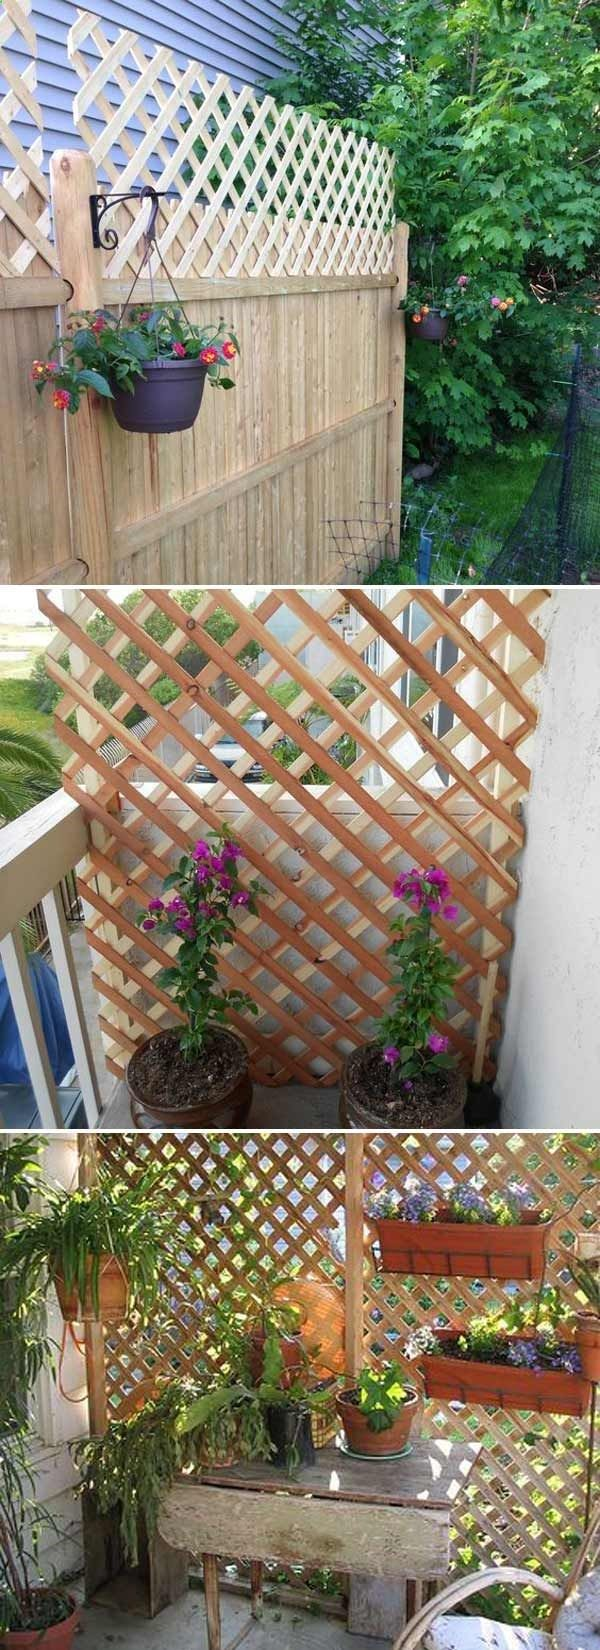 Get added privacy in your yard by building a trellis or ...